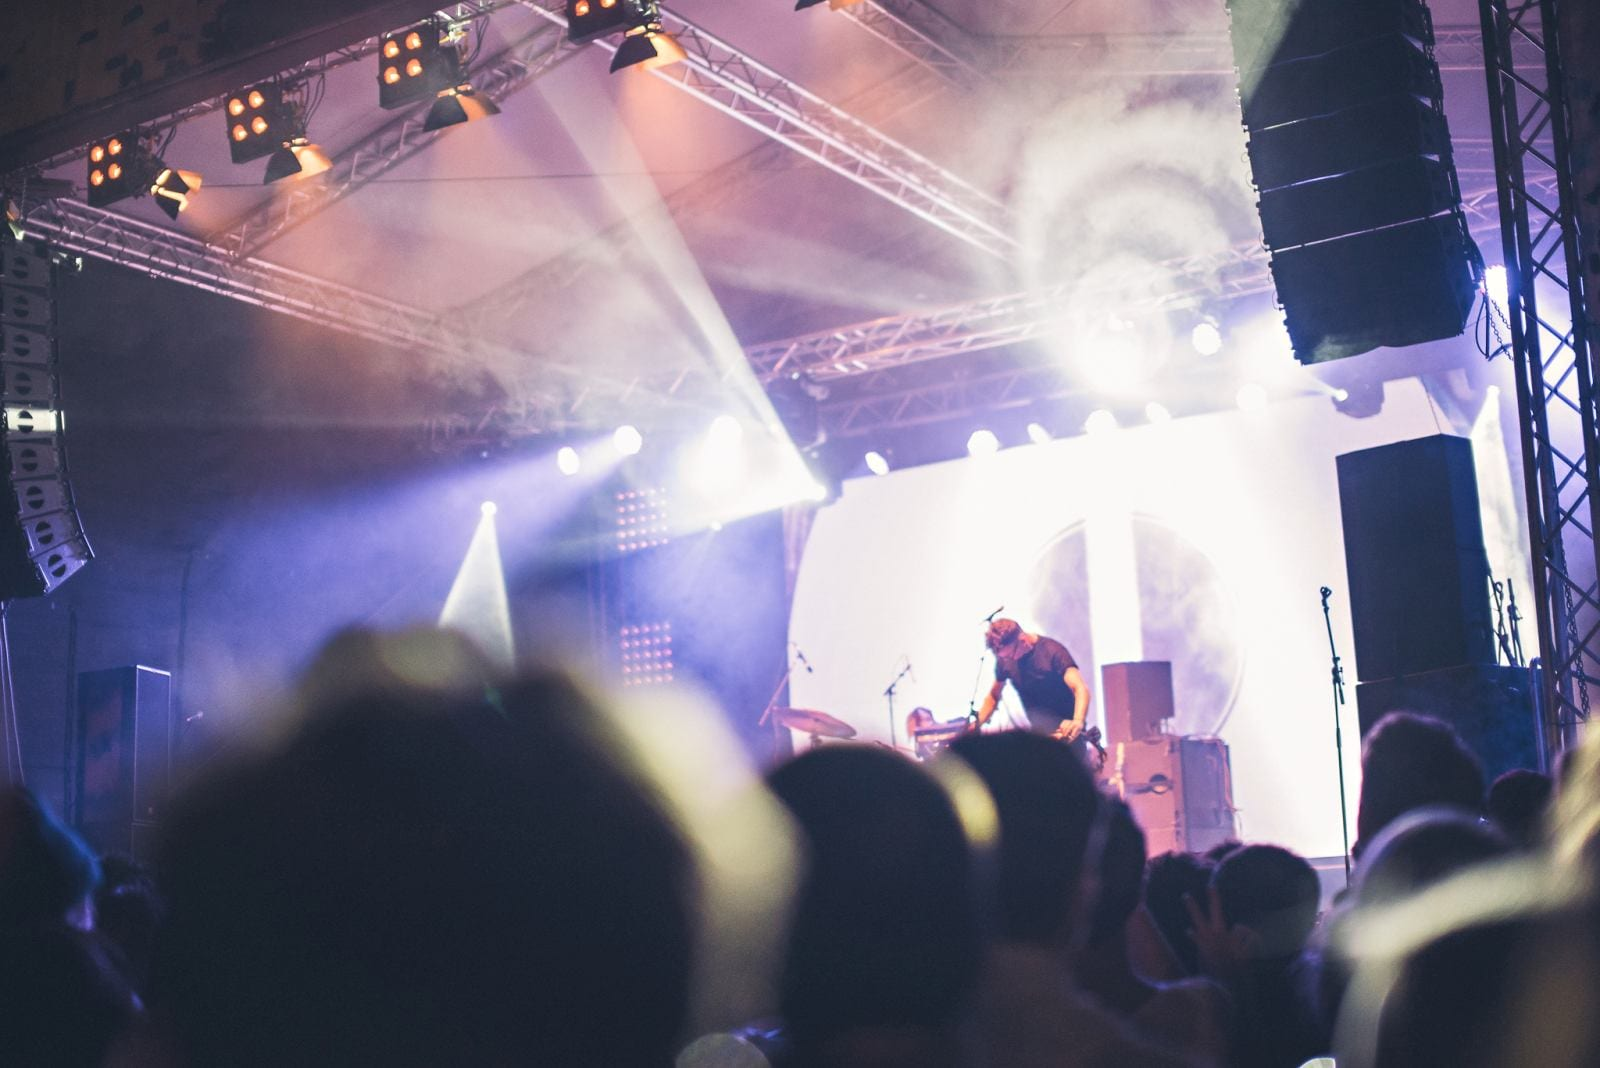 011 ms dockville 2015 tom odell - MS Dockville 2015